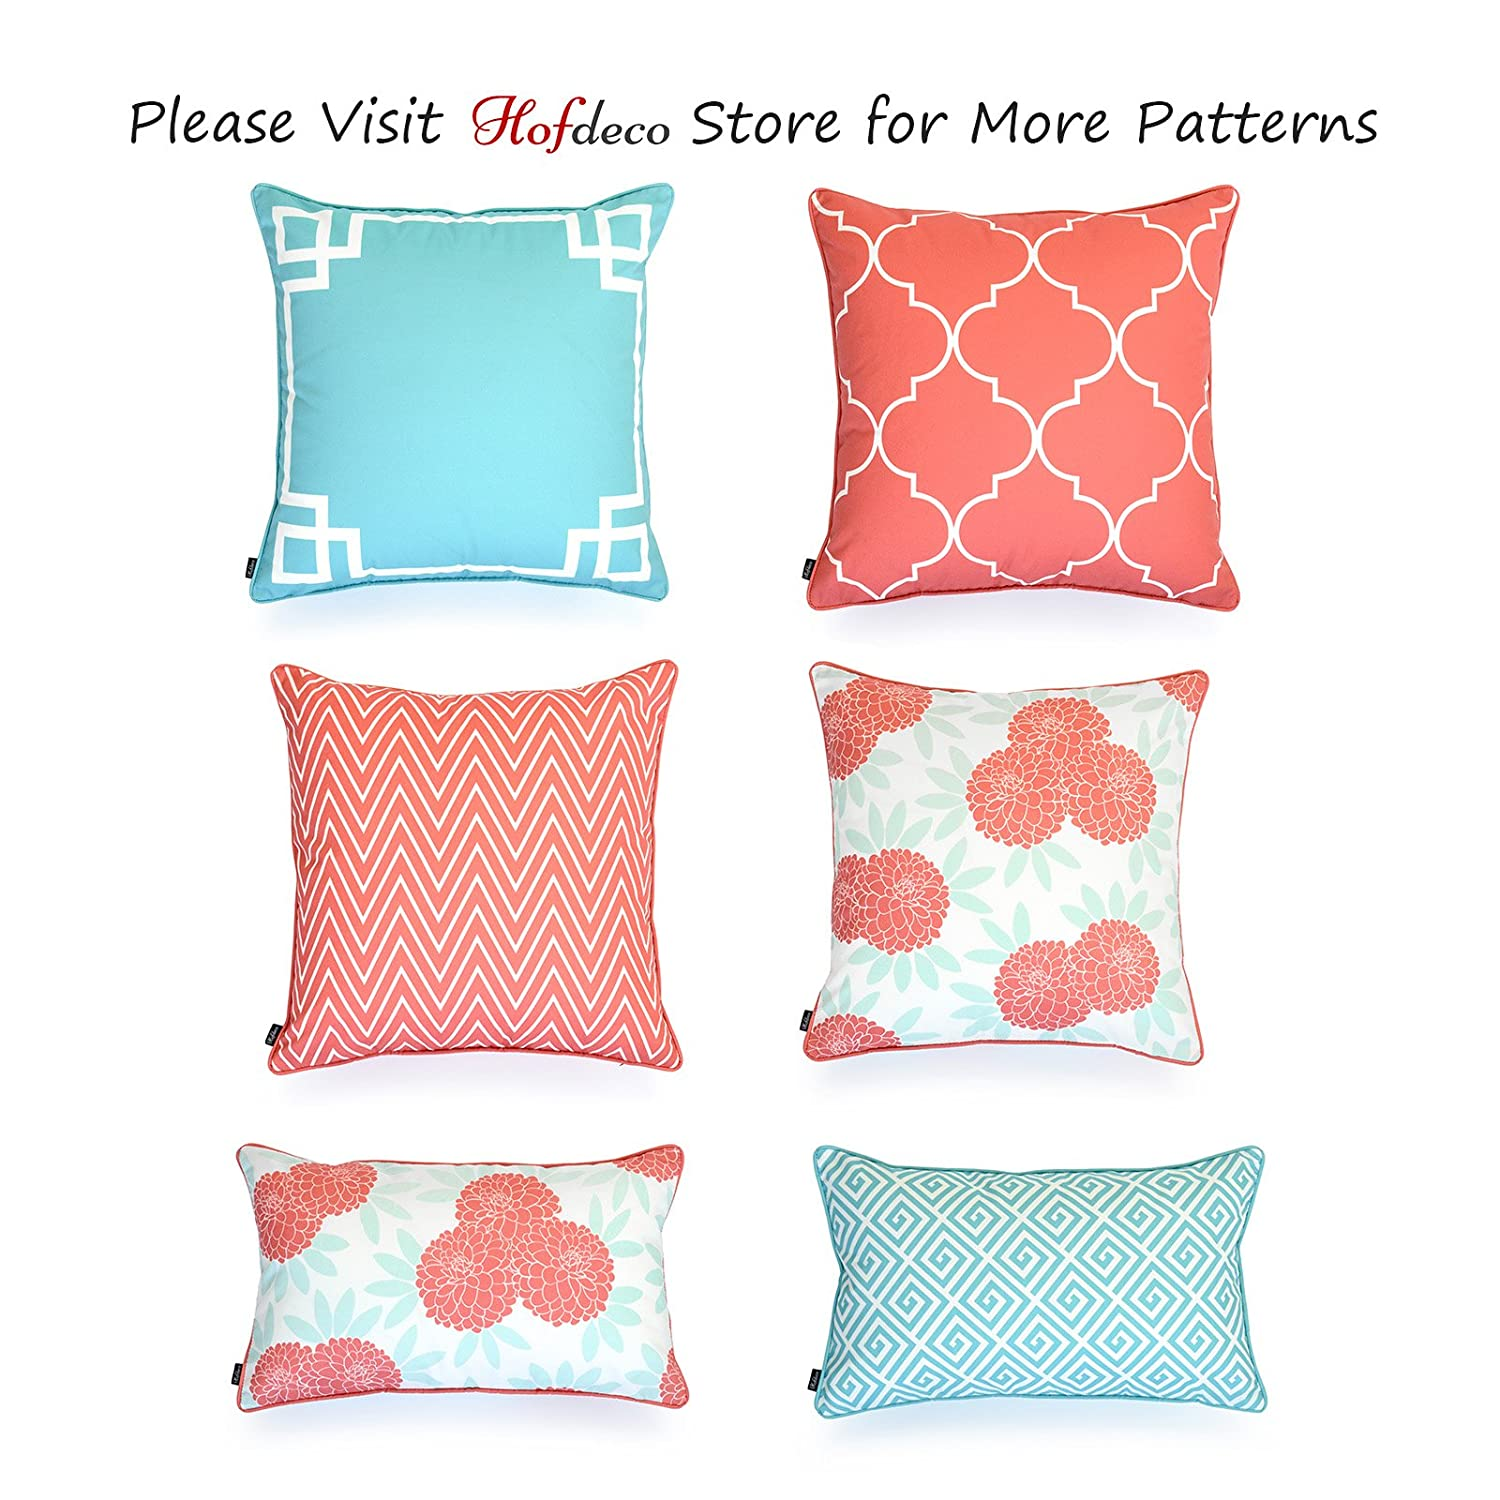 Hofdeco Decorative Lumbar Pillow Cover INDOOR OUTDOOR WATER RESISTANT Canvas Spring Aqua Coral Pink Maze Chinoiserie Floral 12x20 Set of 2